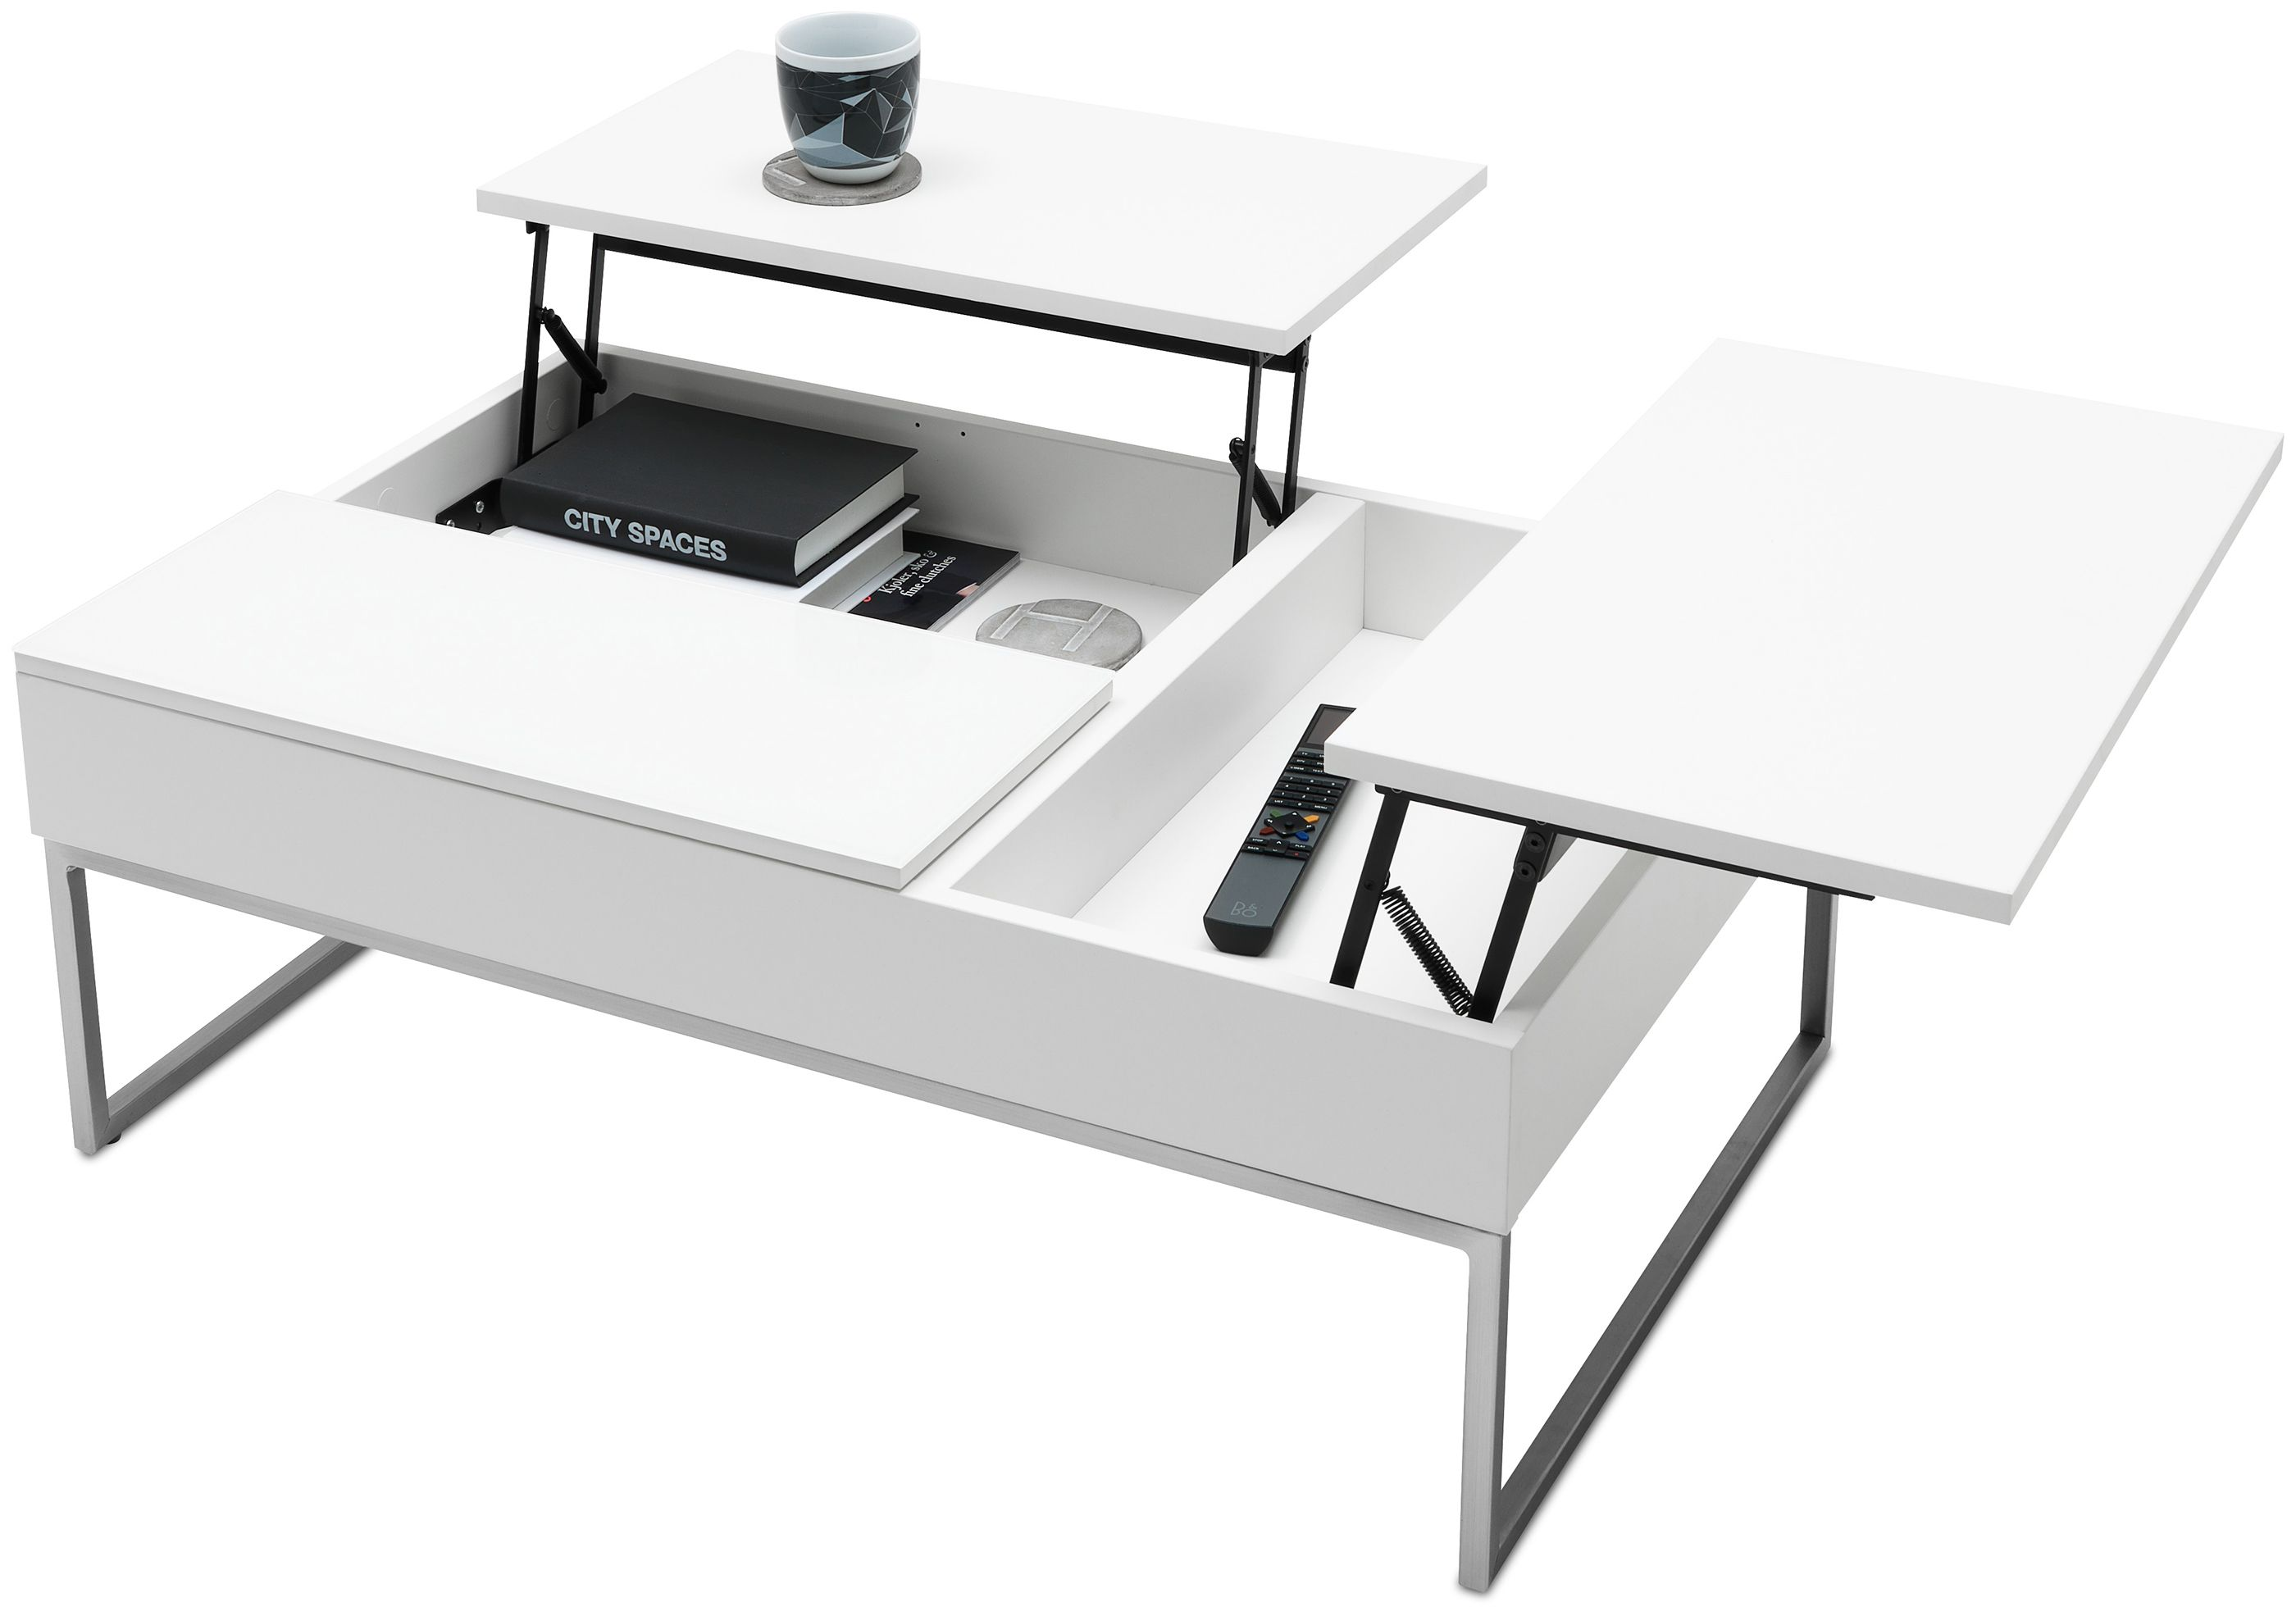 Chiva Functional Coffee Table With Storage Available In Diffe Colors As Shown Matte White Lacquered Gl Brushed Steel